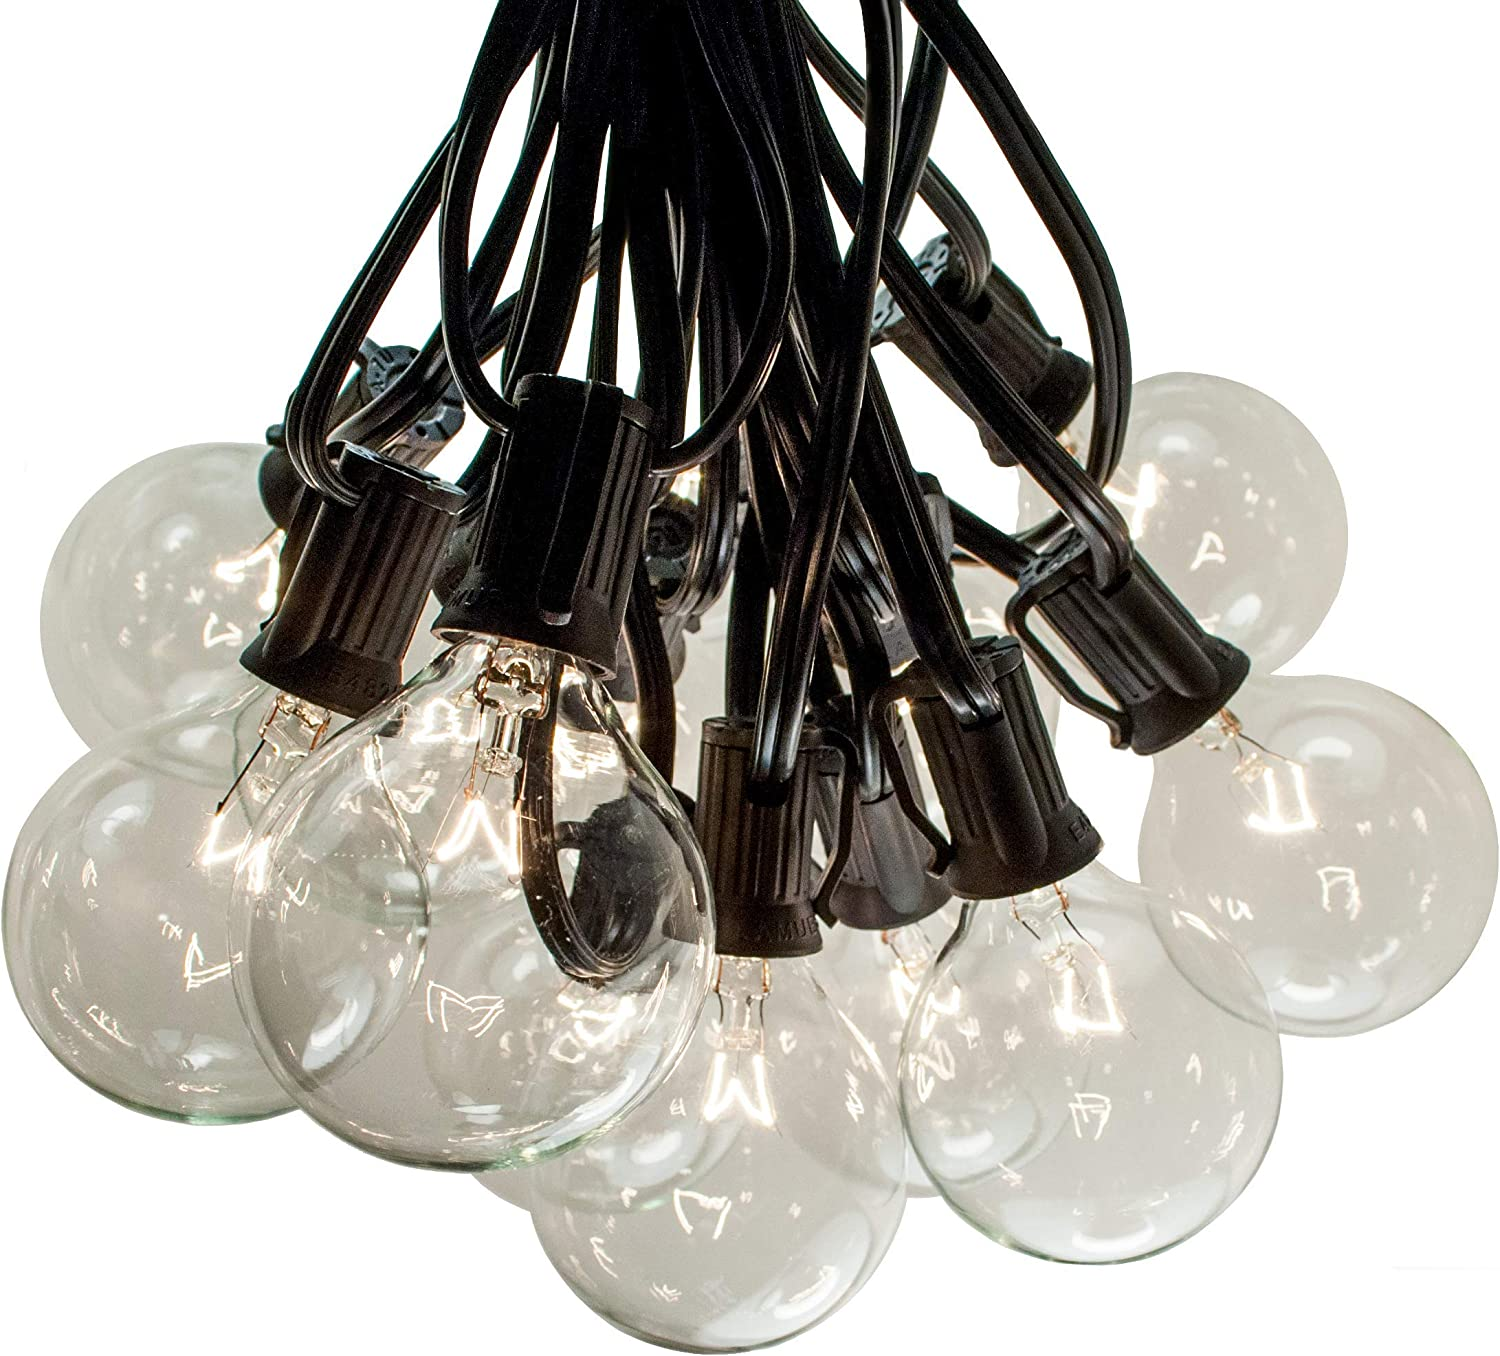 100 Foot Outdoor String Lights 105 G50 Clear 2 Bulbs 5 Extra Black Wire Globe String Lights For Patio Backyard Deck Bistro Cafe And Party Lighting Amazon Com